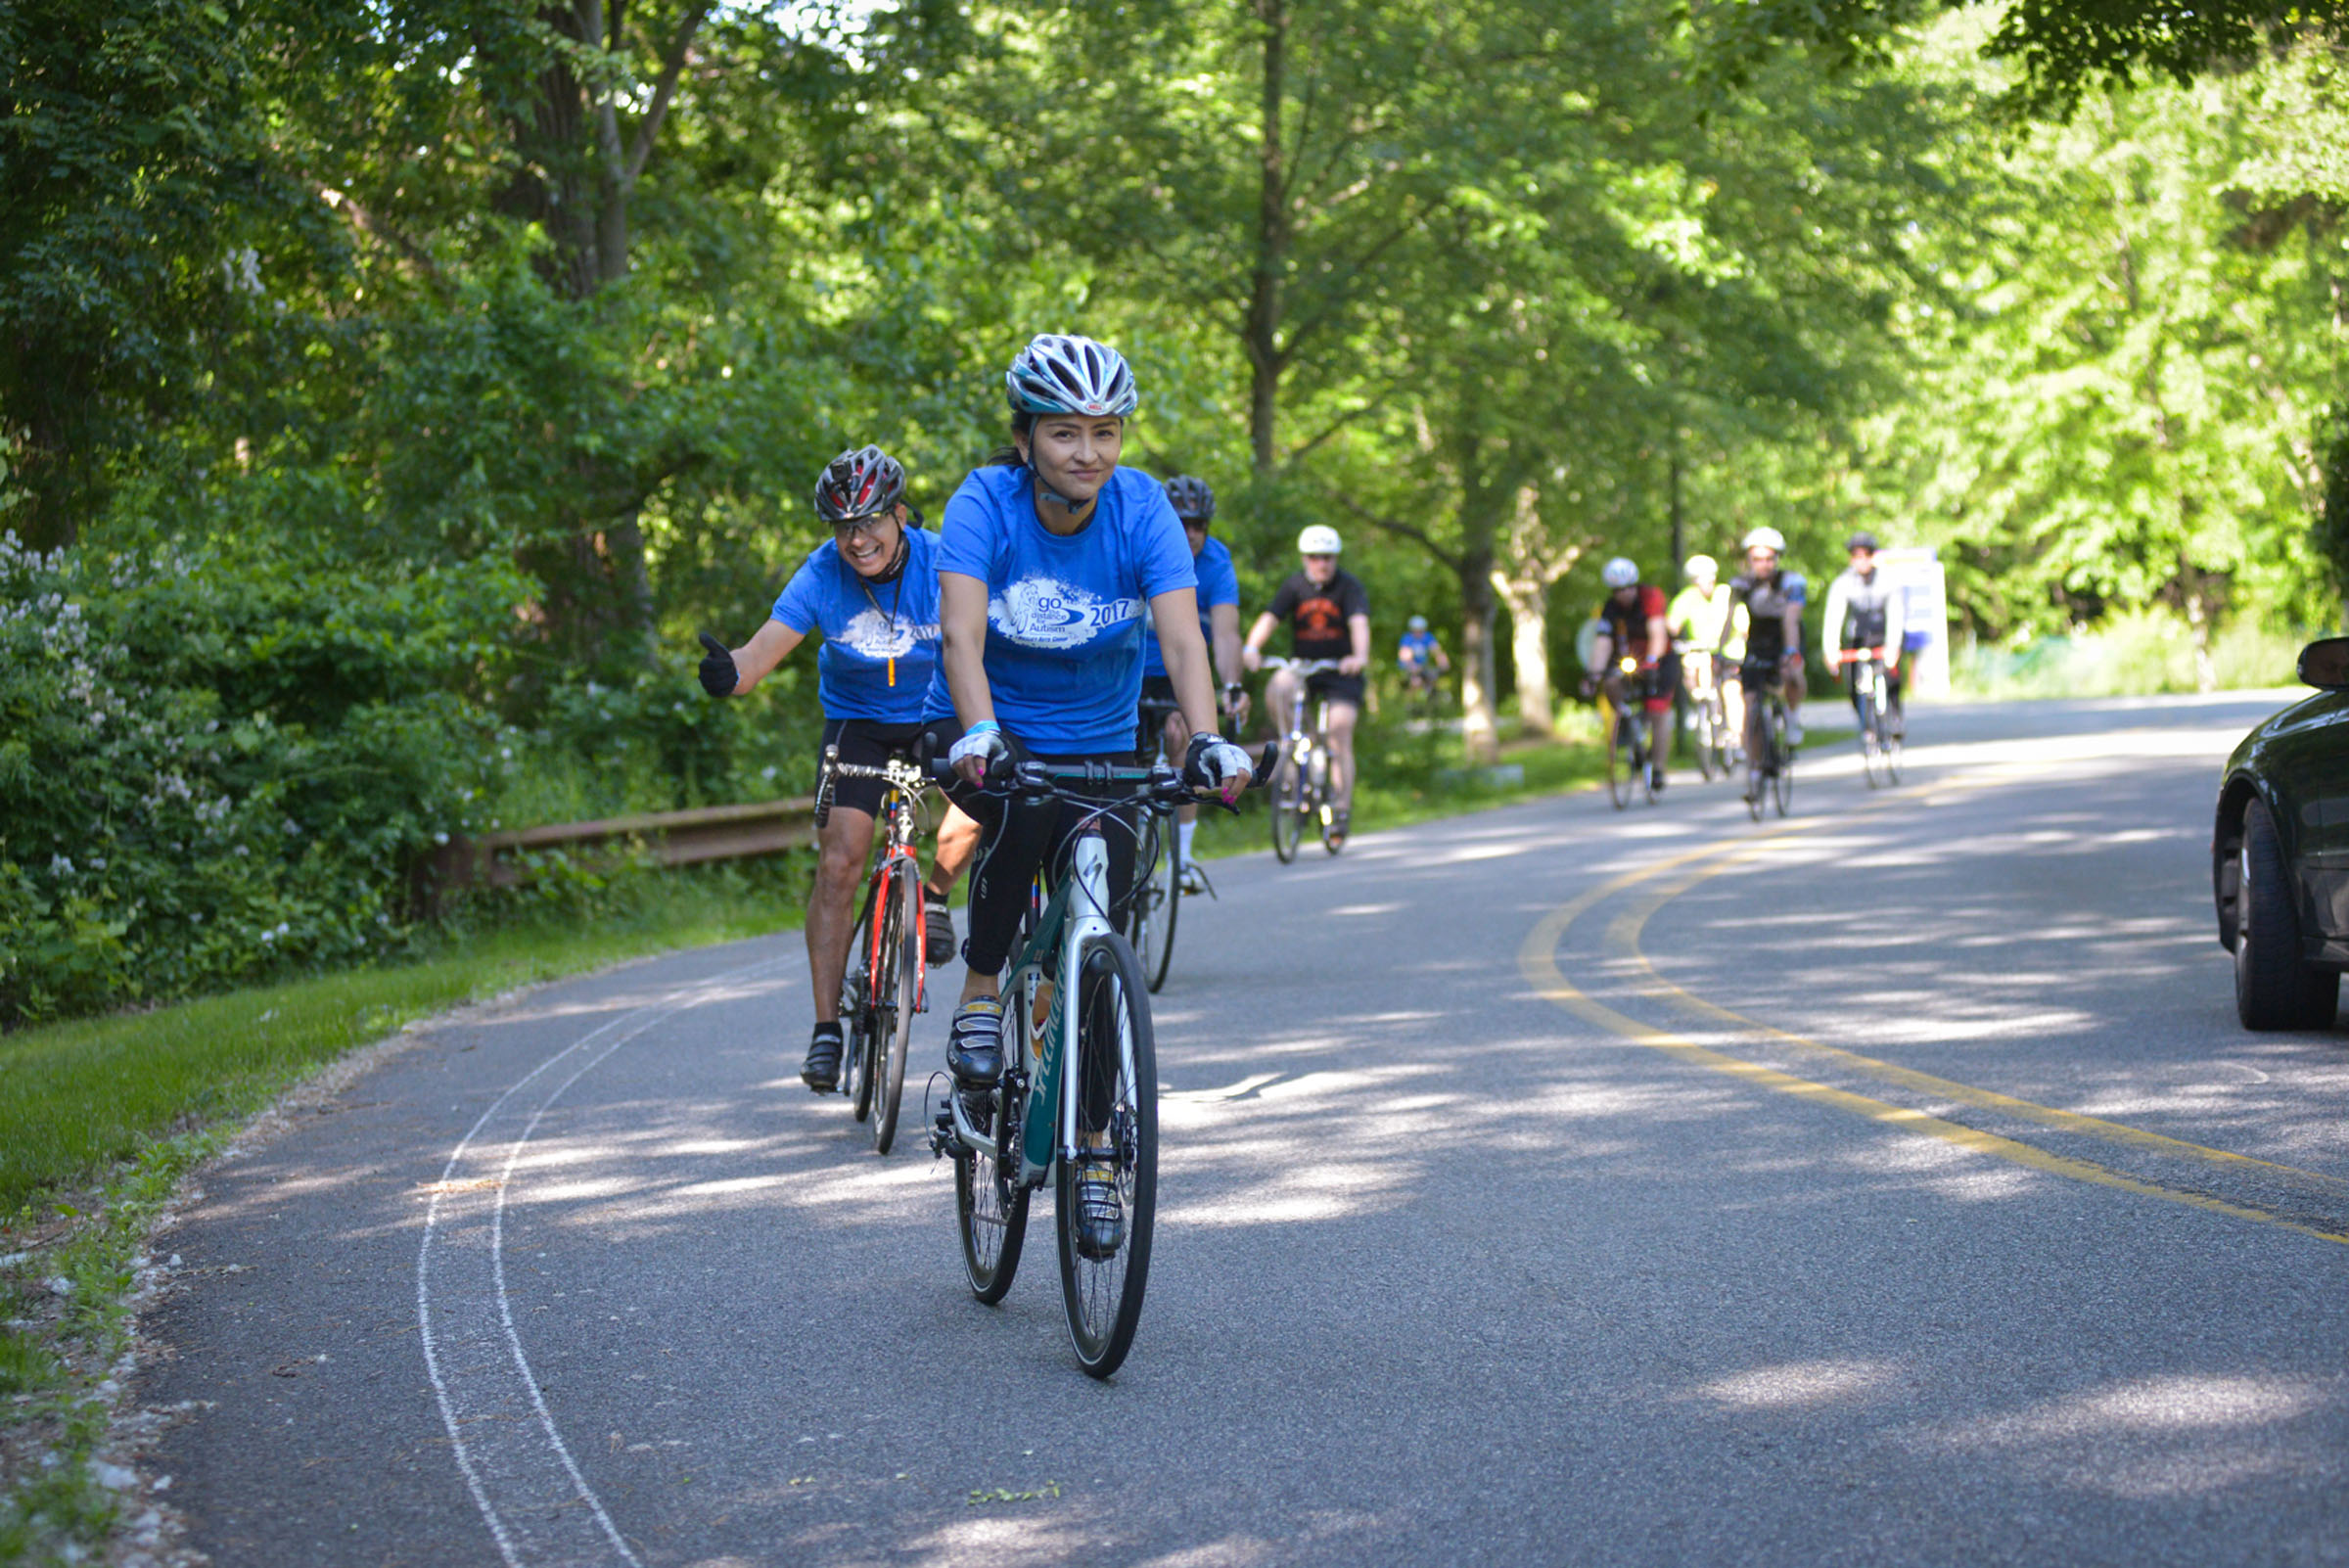 2017-06-04 GTD4A Charity Bike Ride - BCC - Paramus NJ-1860.jpg